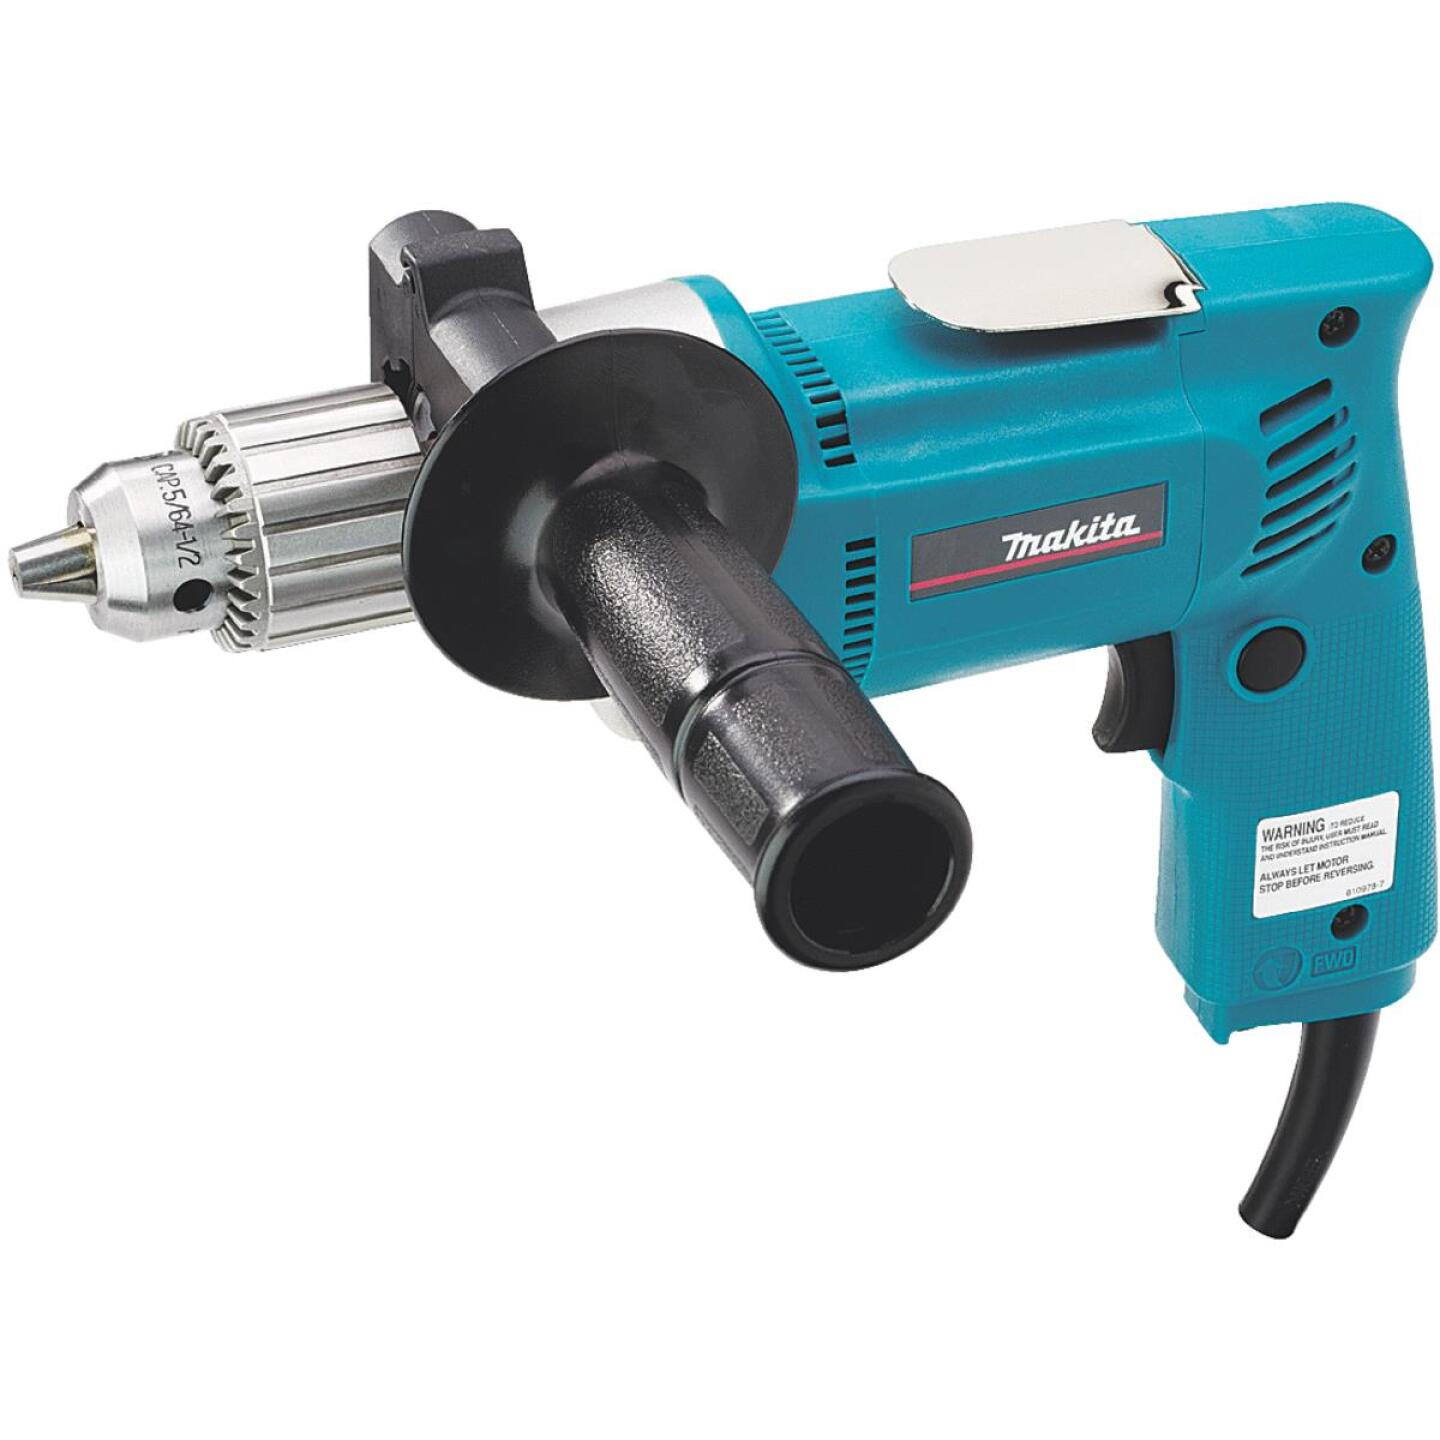 Makita 1/2 In. 6.5-Amp Keyed Electric Drill with Pistol Grip Image 1